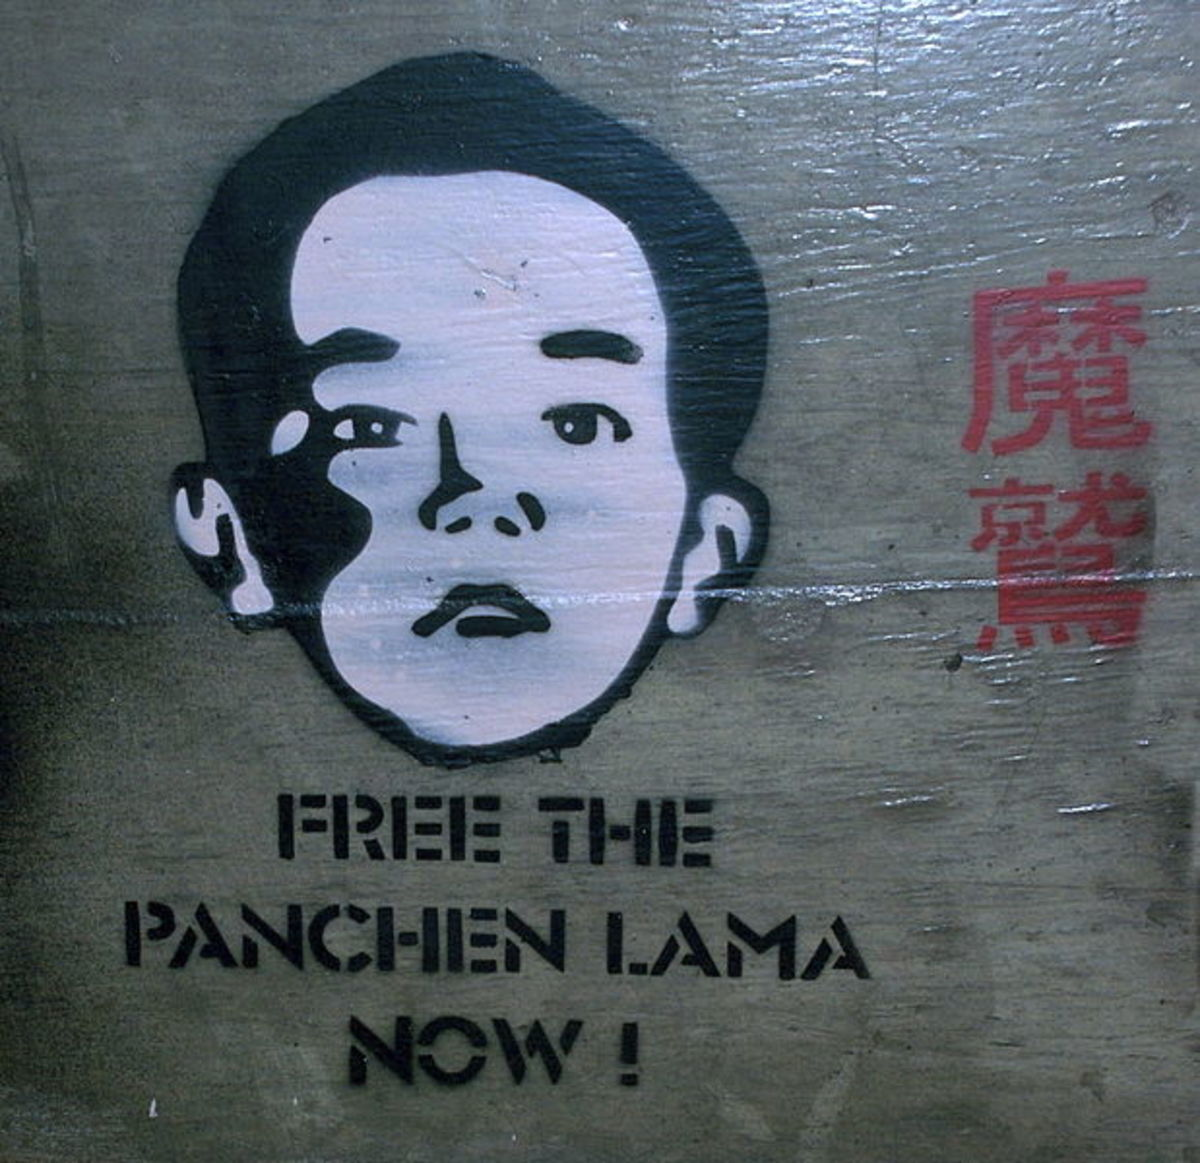 Gedhun Choekyi was selected as the eleventh Panchen Lama by the Dalai Lama in 1995, but disappeared few days later. It is believed he languishes in Chinese prison.